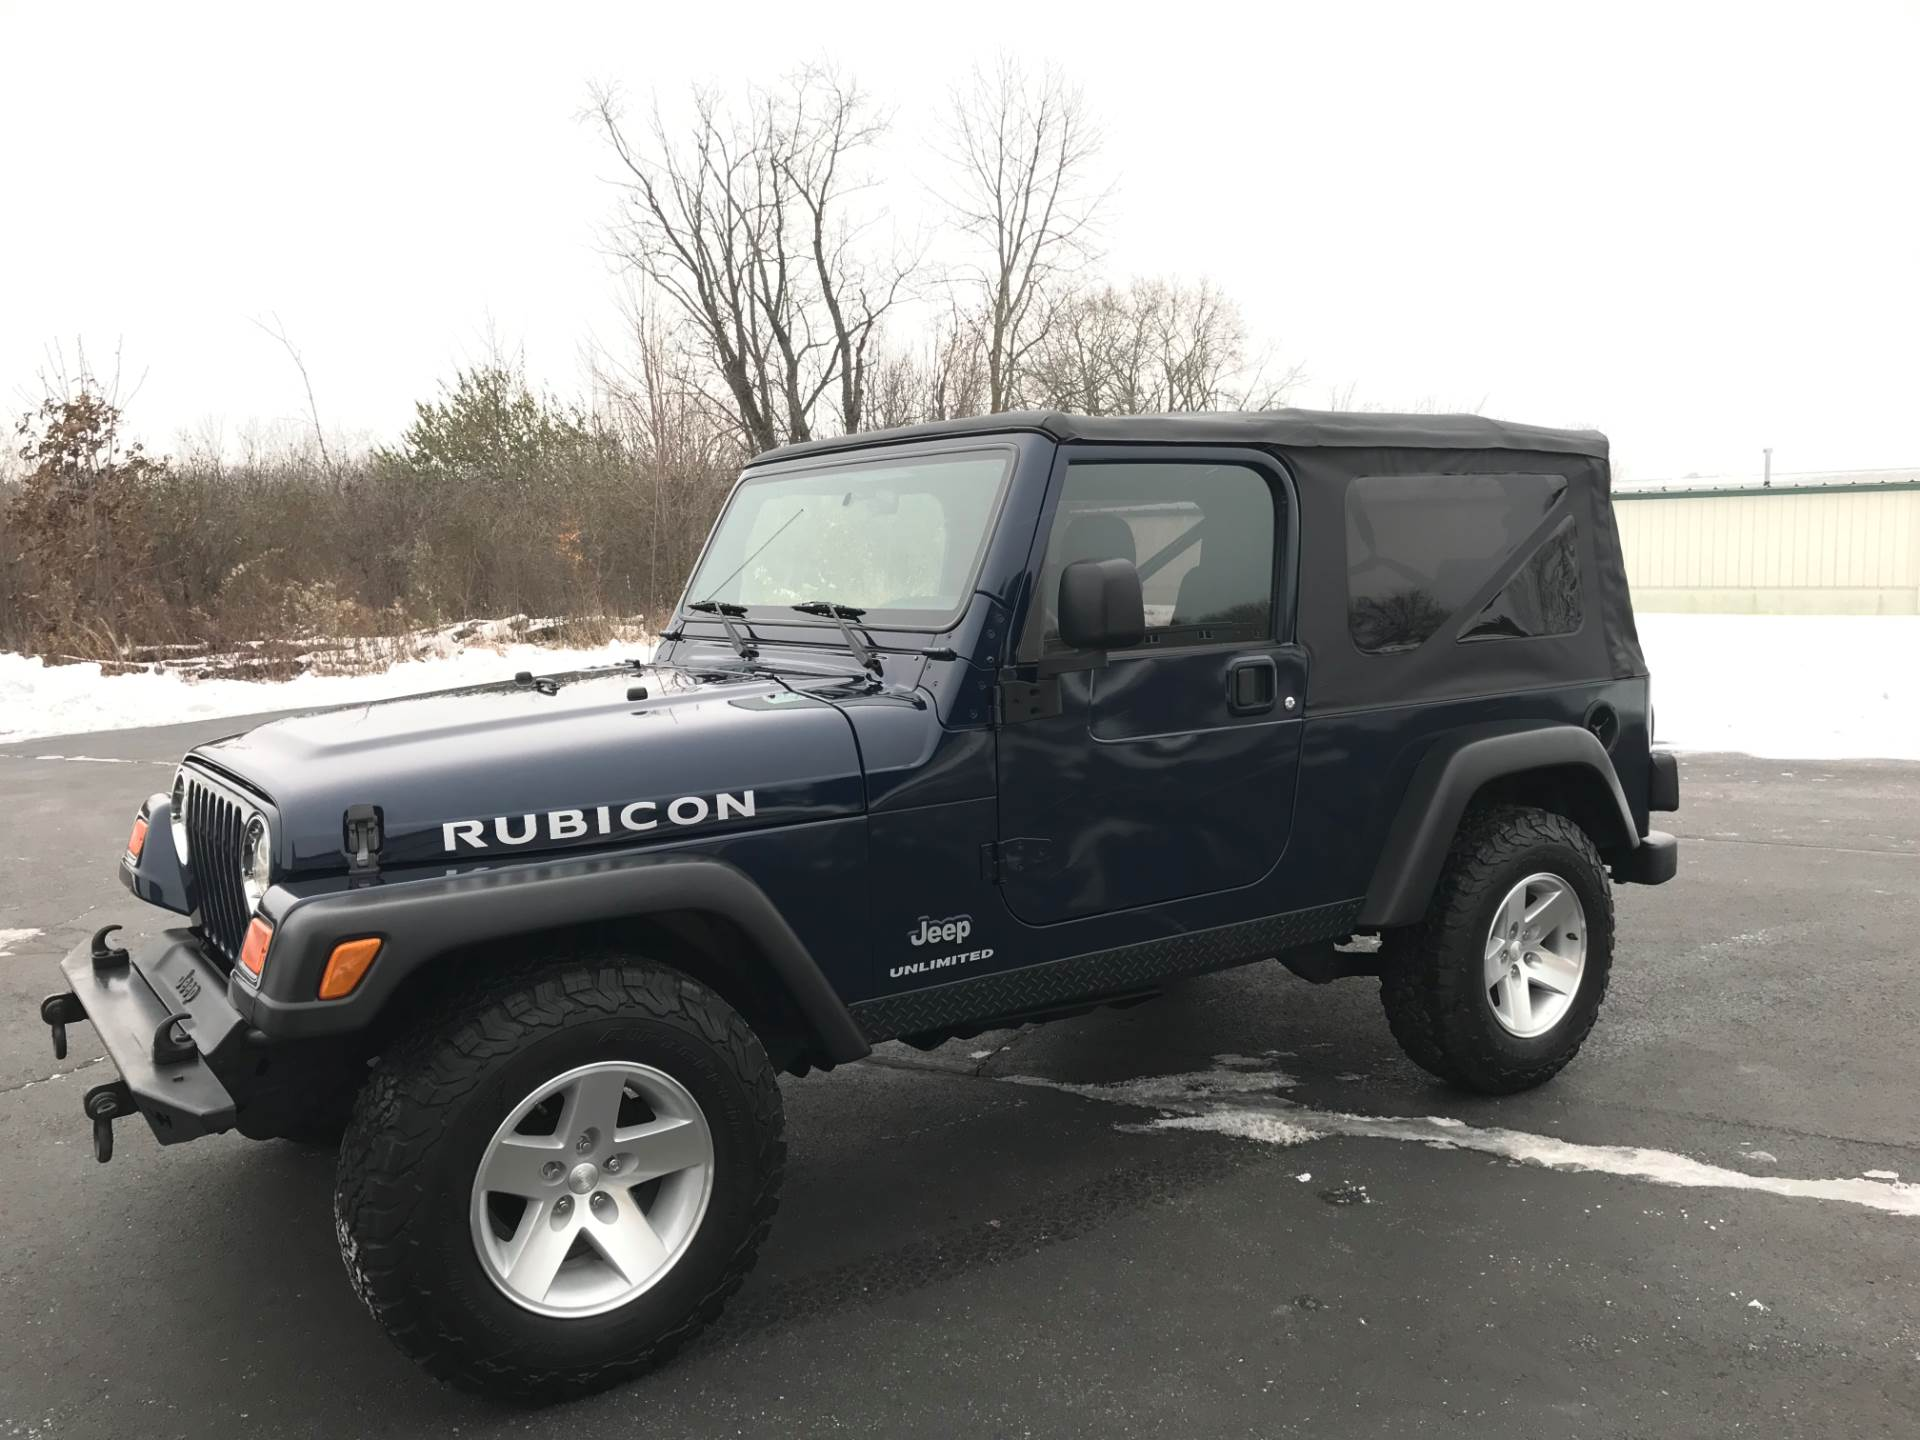 2006 Jeep Wrangler Unlimited Rubicon 2dr SUV 4WD in Big Bend, Wisconsin - Photo 108